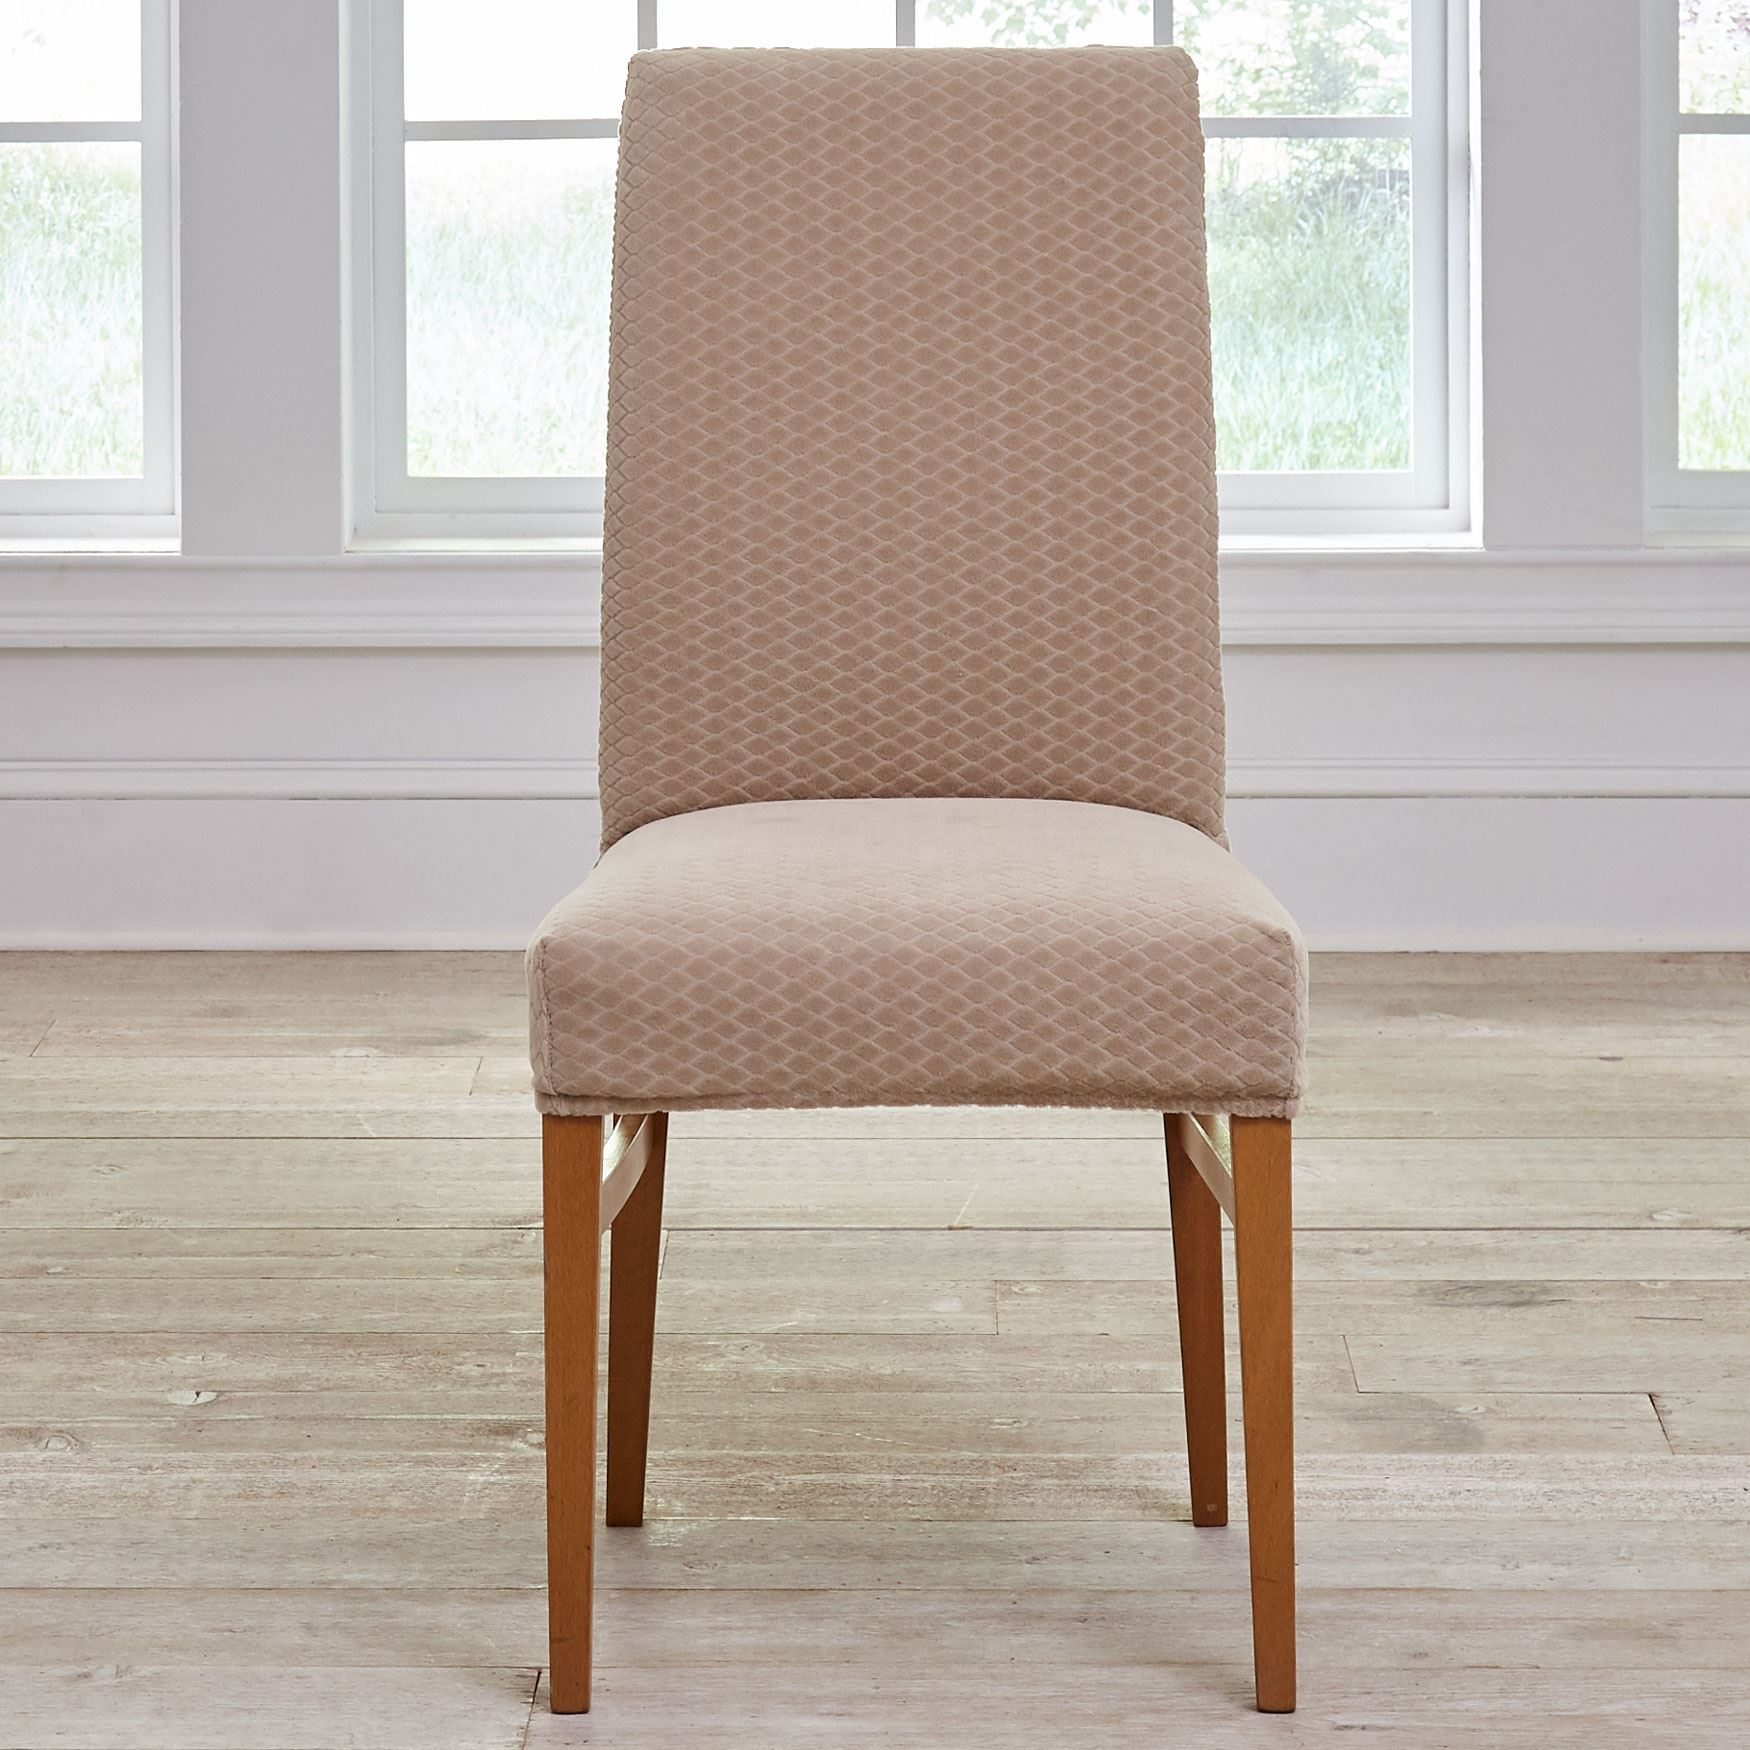 dining chair slipcover electric recliner motors parts bh studio stretch diamond plus size